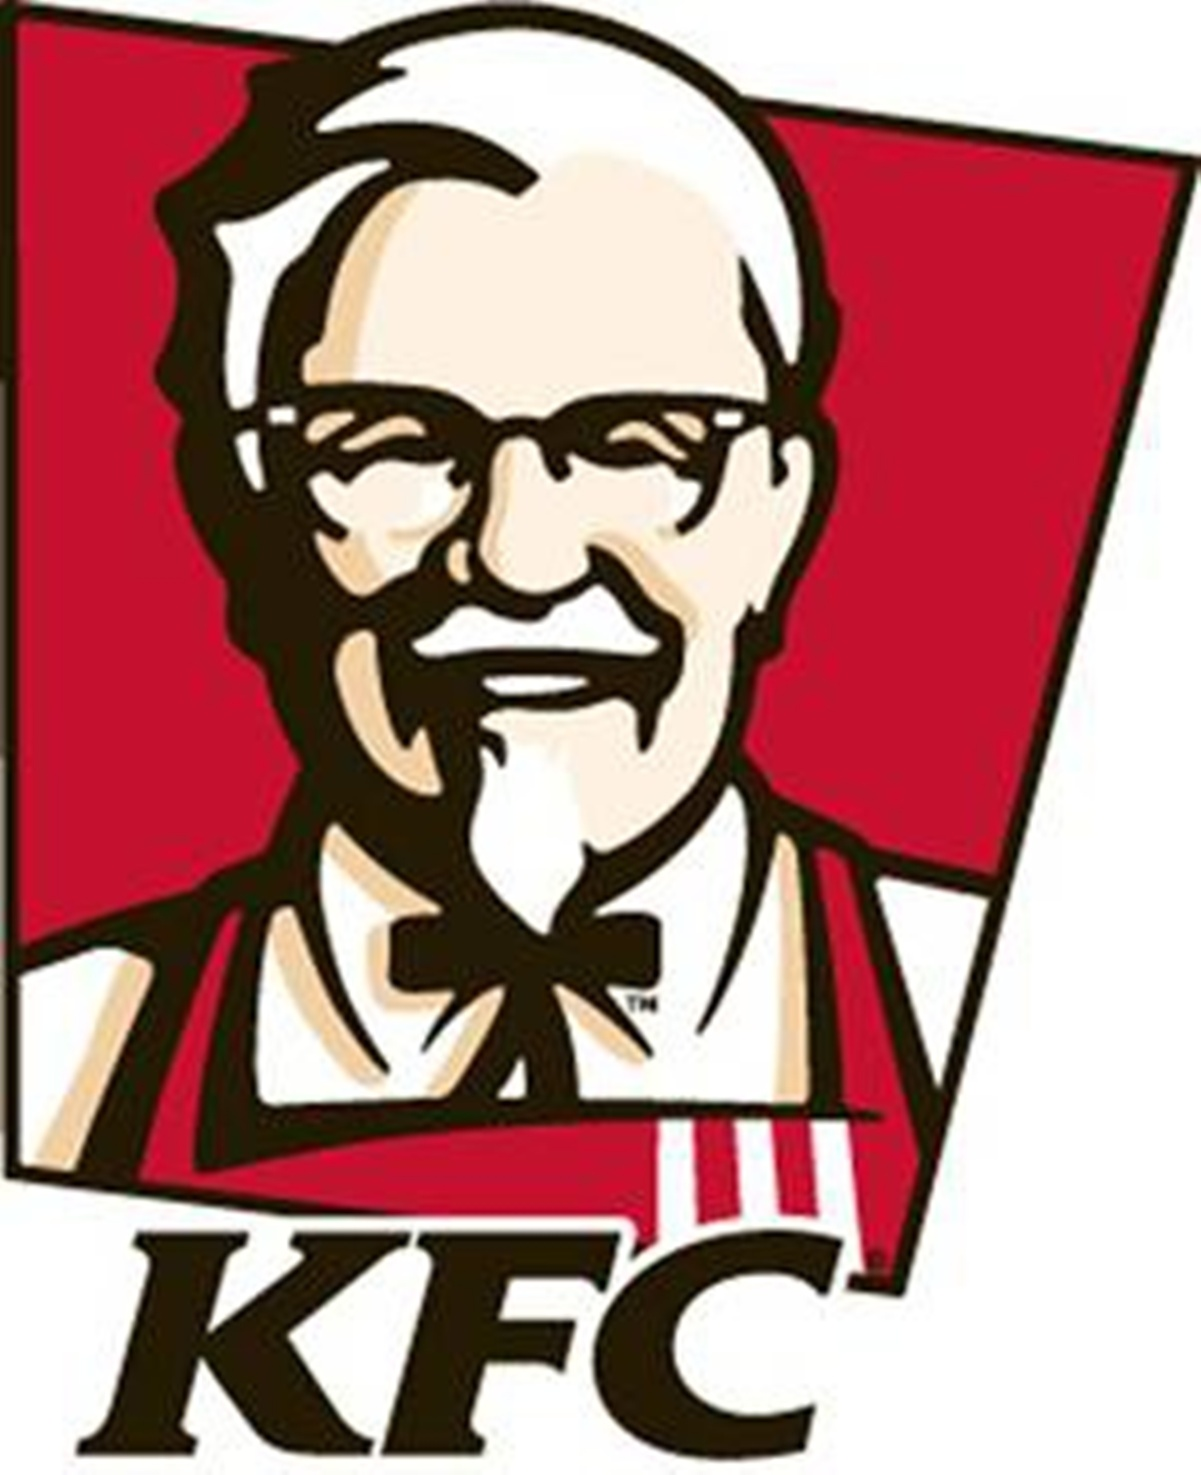 KFC appeal to build on the edge of Colchester dismissed